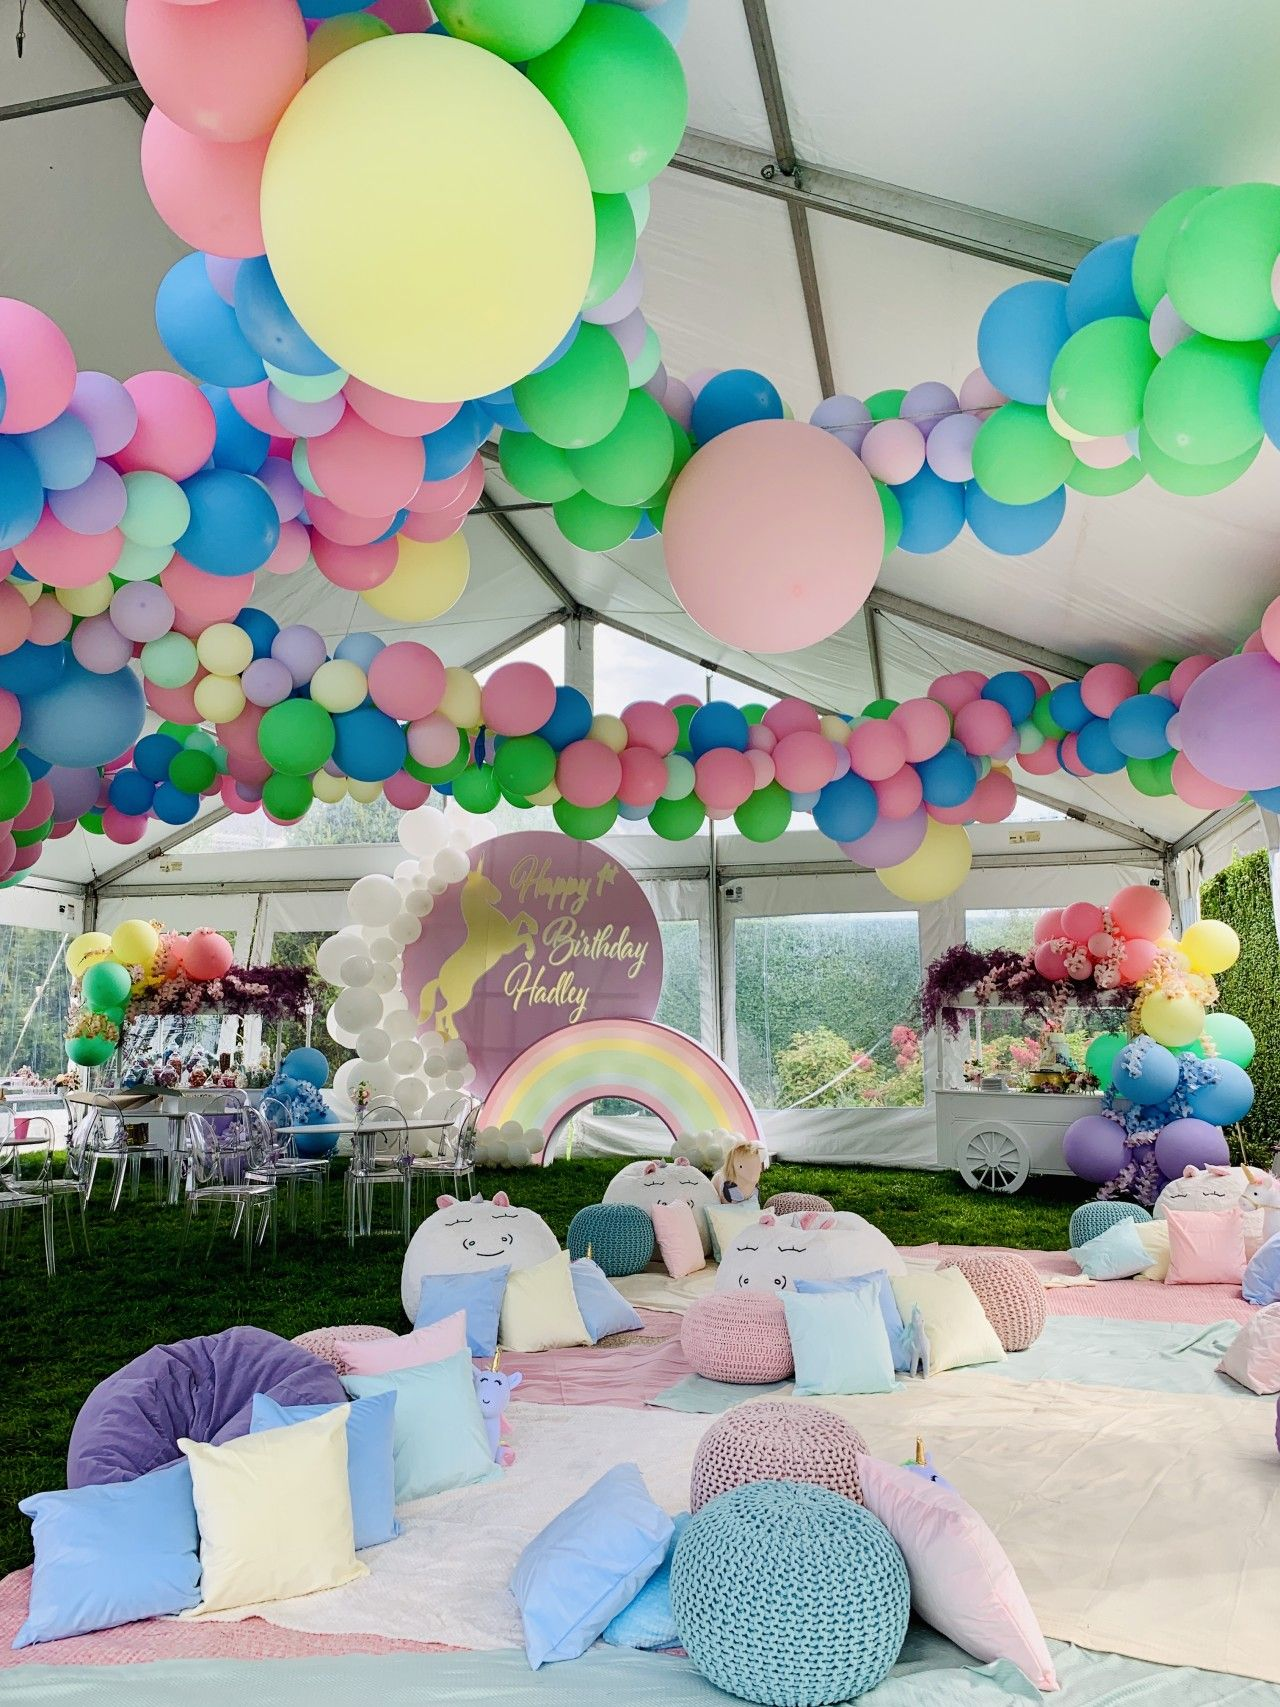 Flashbackfriday Here S A Sneak Peak Of The Magical First Birthday Party We Brought To Life Last Weekend A Unicorn Party First Birthday Parties Party Themes